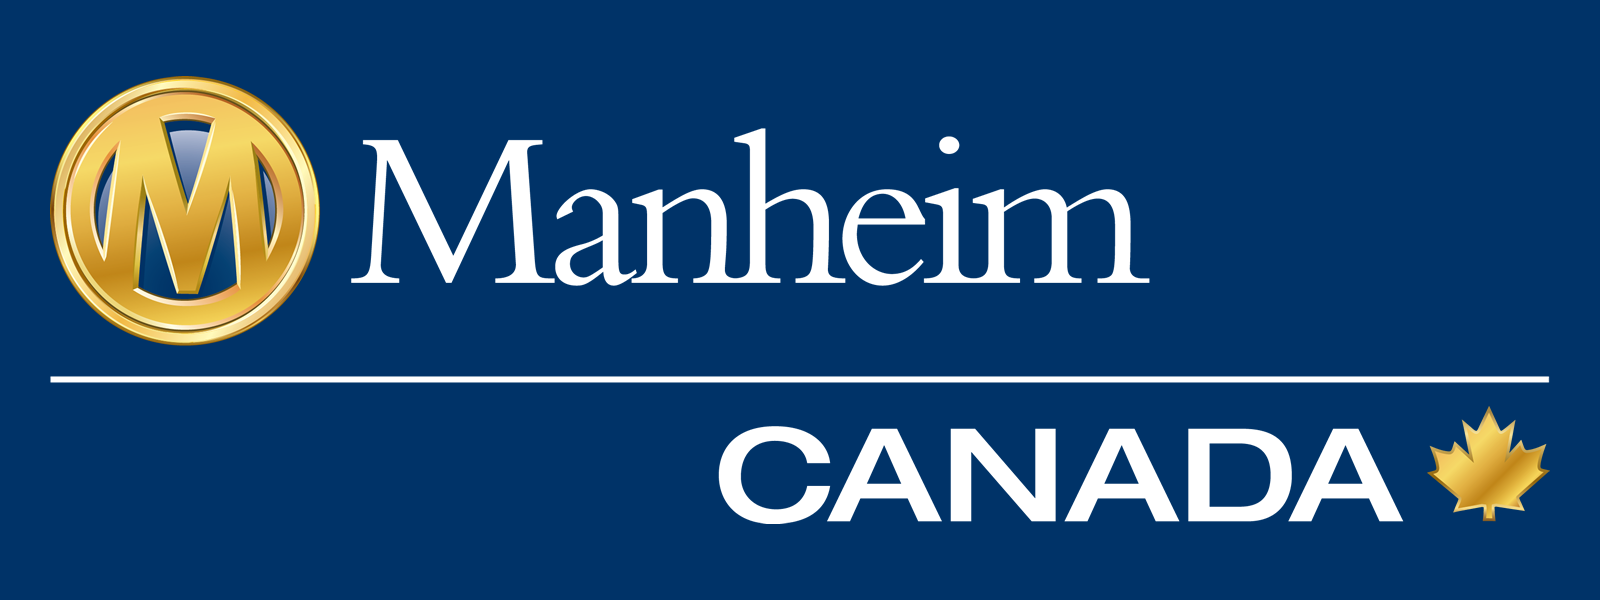 Manheim Canada: Introducing the Kingfisher Project